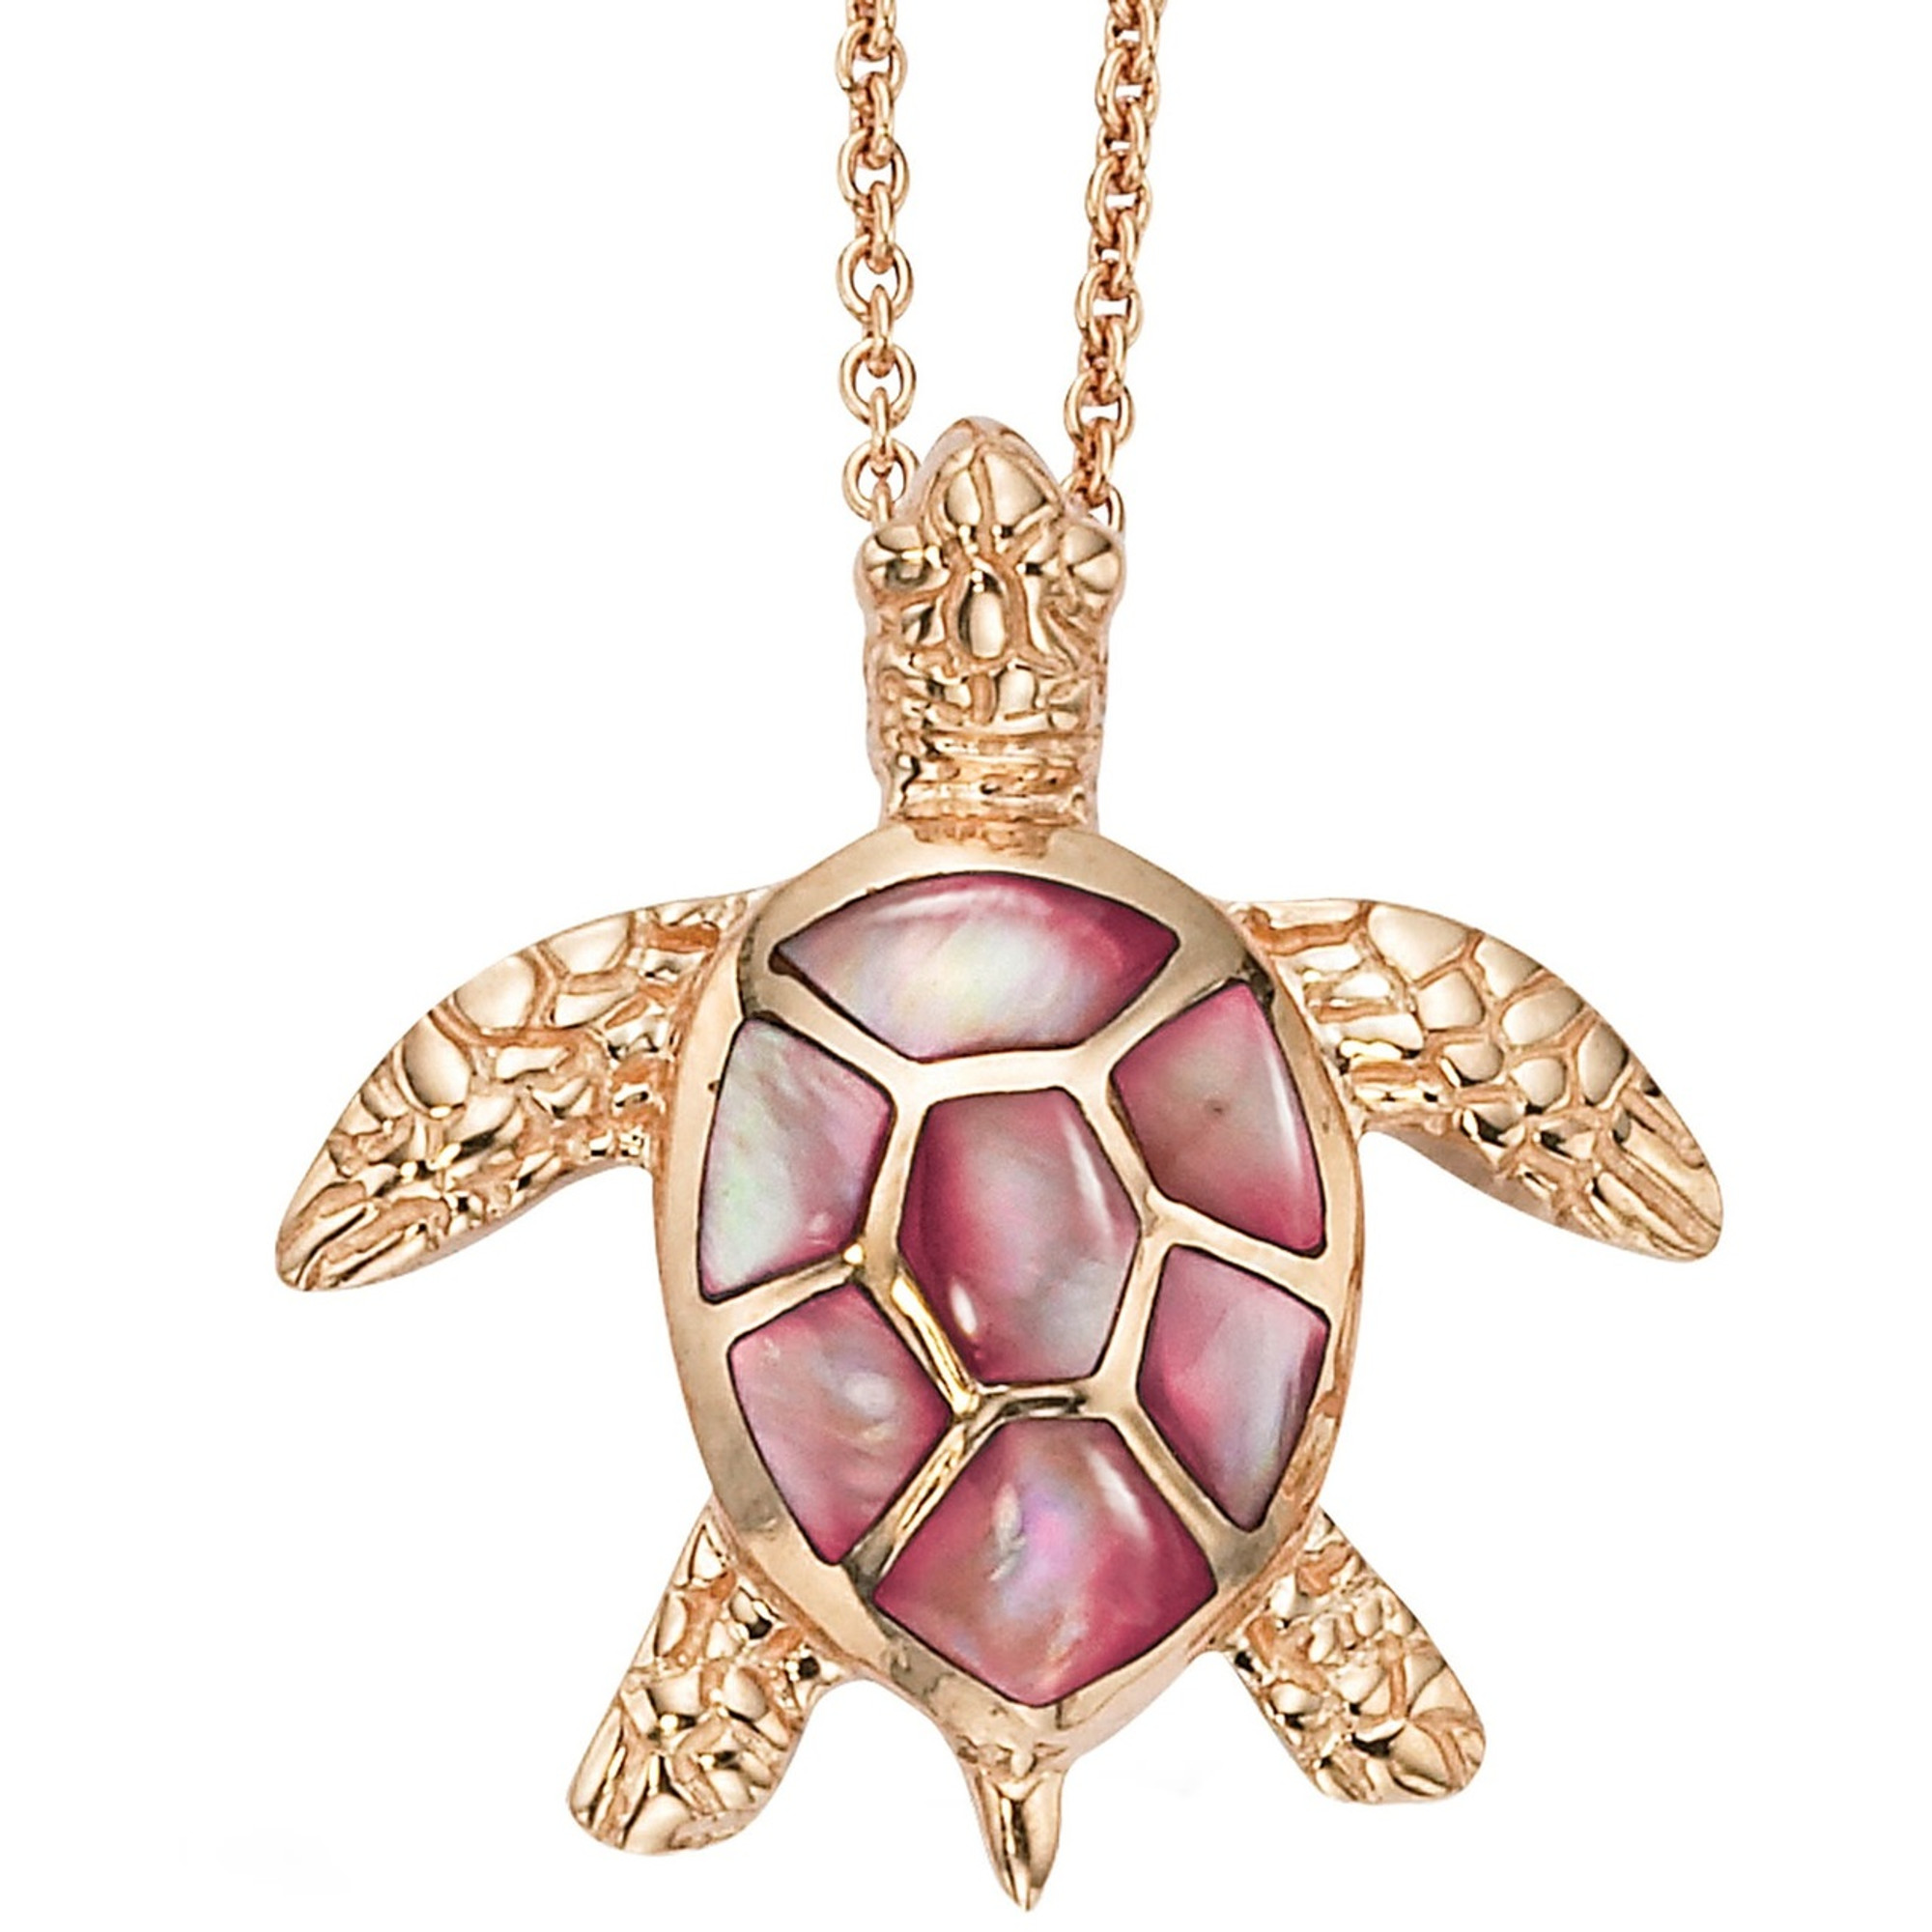 Sea turtle 14k rose gold inlay pendant necklace kabana sea turtle 14k rose gold inlay pendant necklace kabana jewelry gpcnpc192mp ch mozeypictures Images